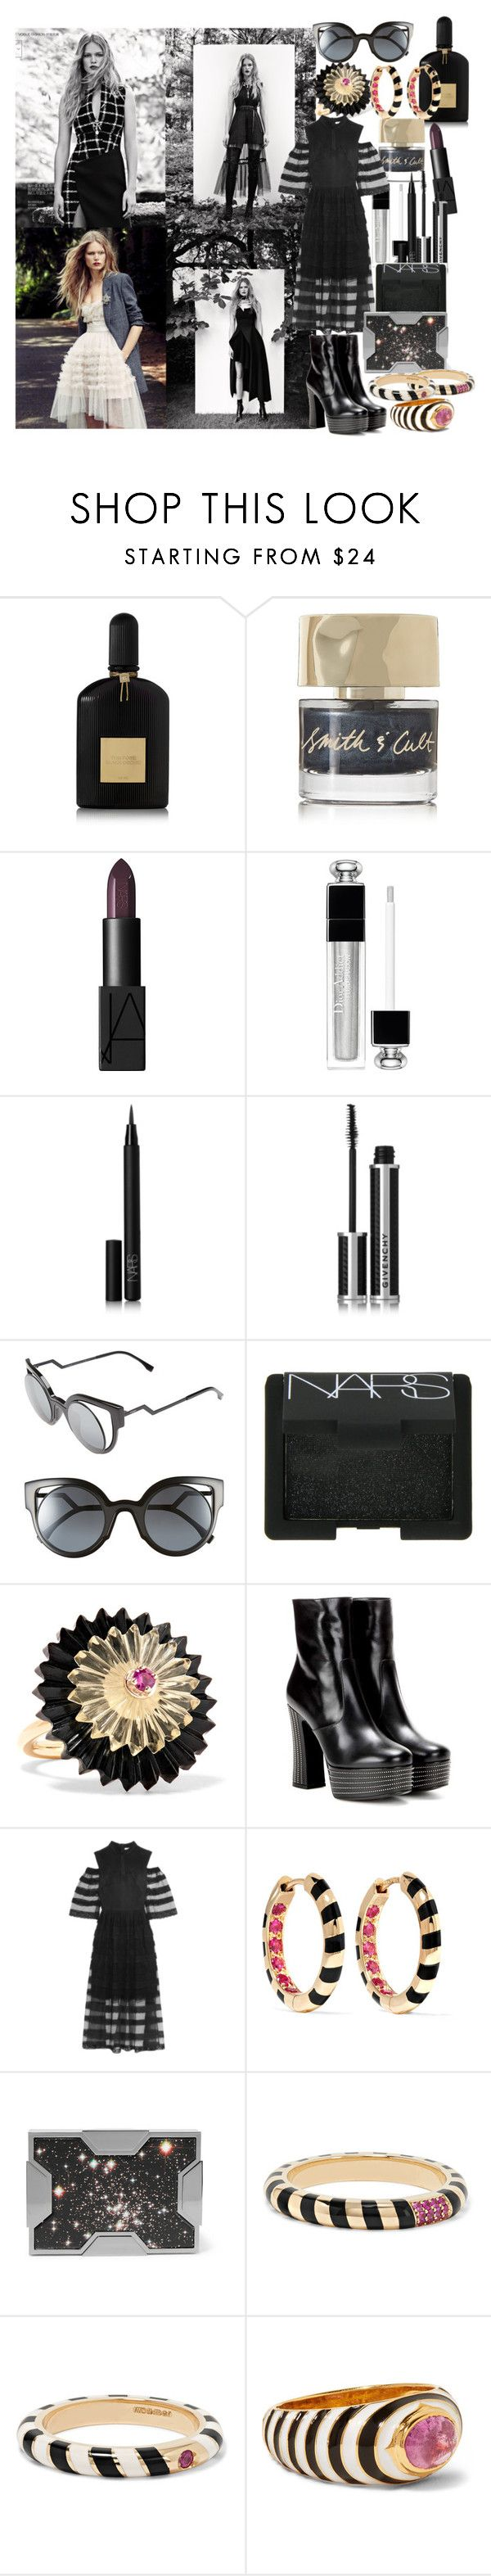 """""""I get drunk on dreams and choke on real life"""" by brownish ❤ liked on Polyvore featuring Tom Ford, Smith & Cult, NARS Cosmetics, Christian Dior, Givenchy, Fendi, Alice Cicolini, Yves Saint Laurent, Vilshenko and Lee Savage"""